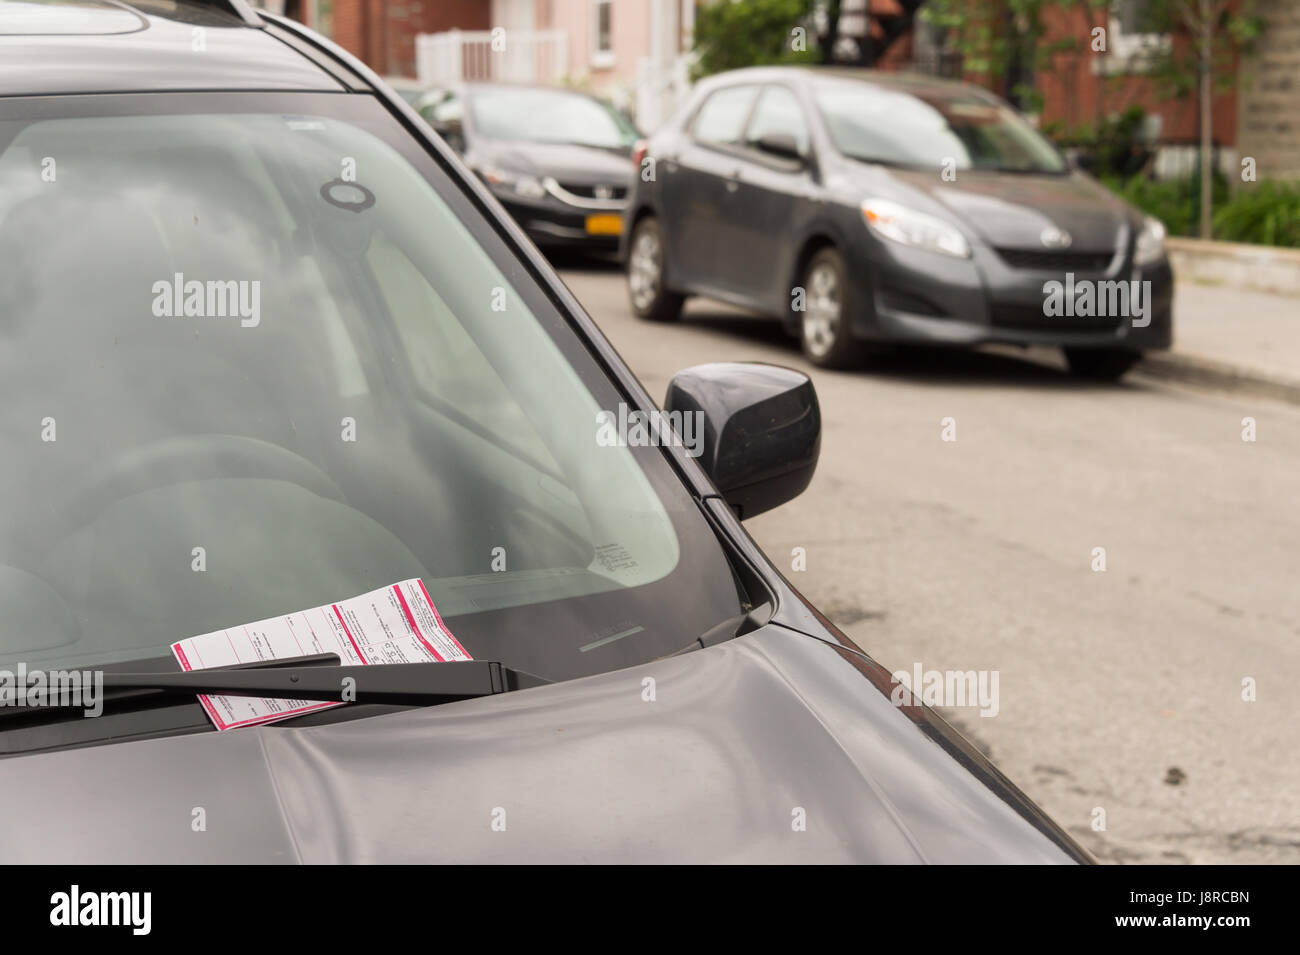 Montreal, CA - 25 May 2017: A parking ticket on a car on Laurier Street - Stock Image